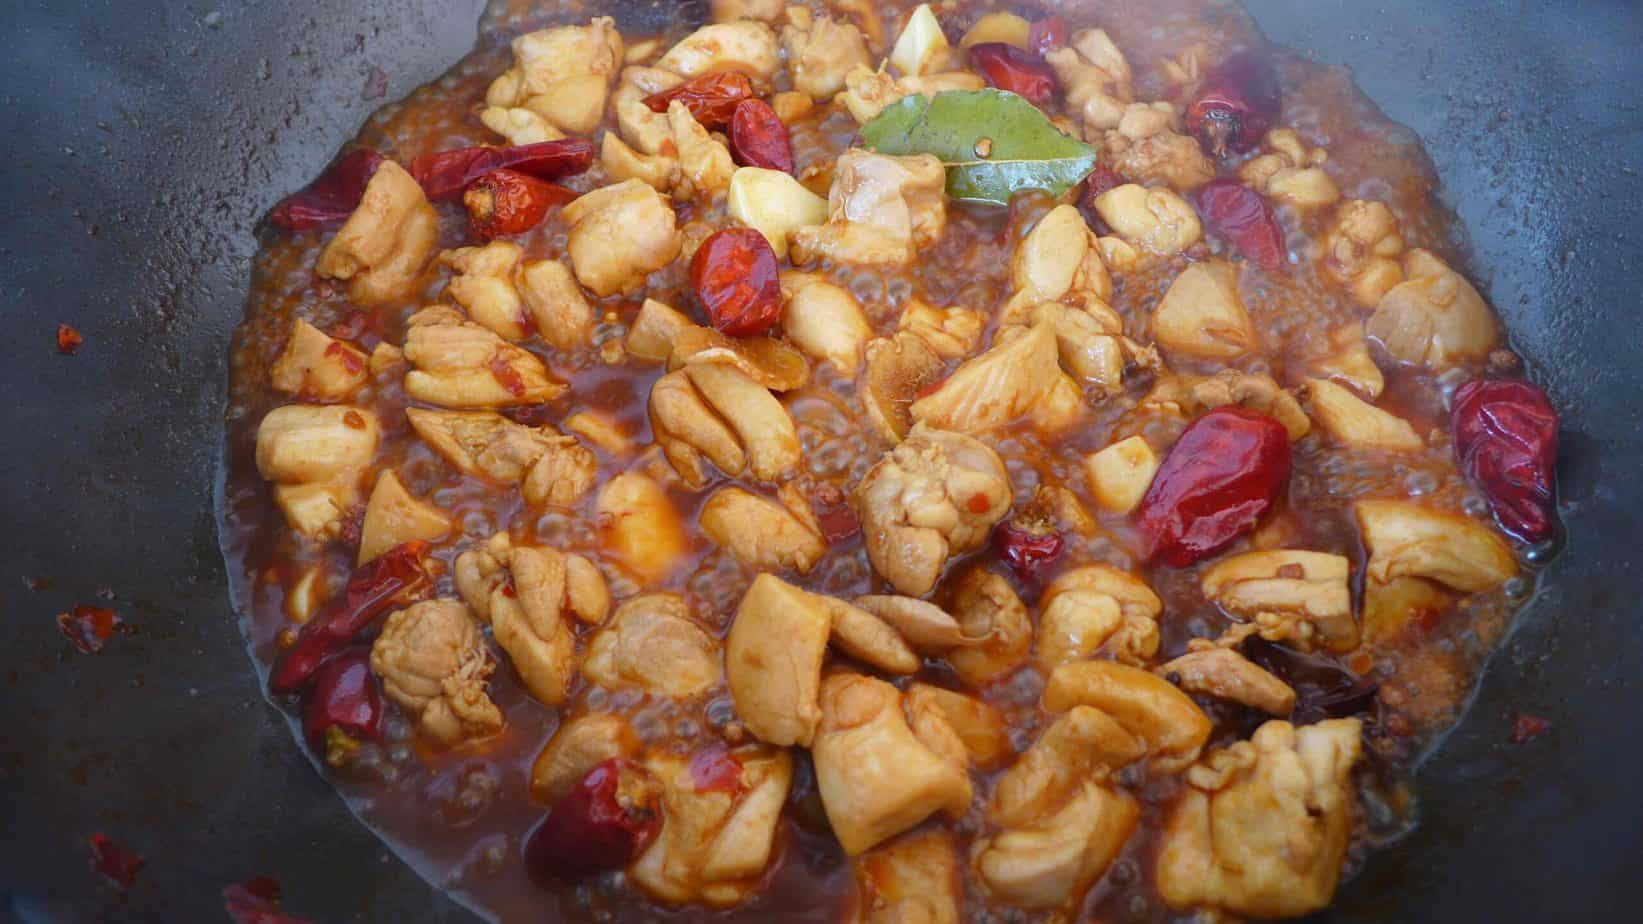 Chicken braised with spices